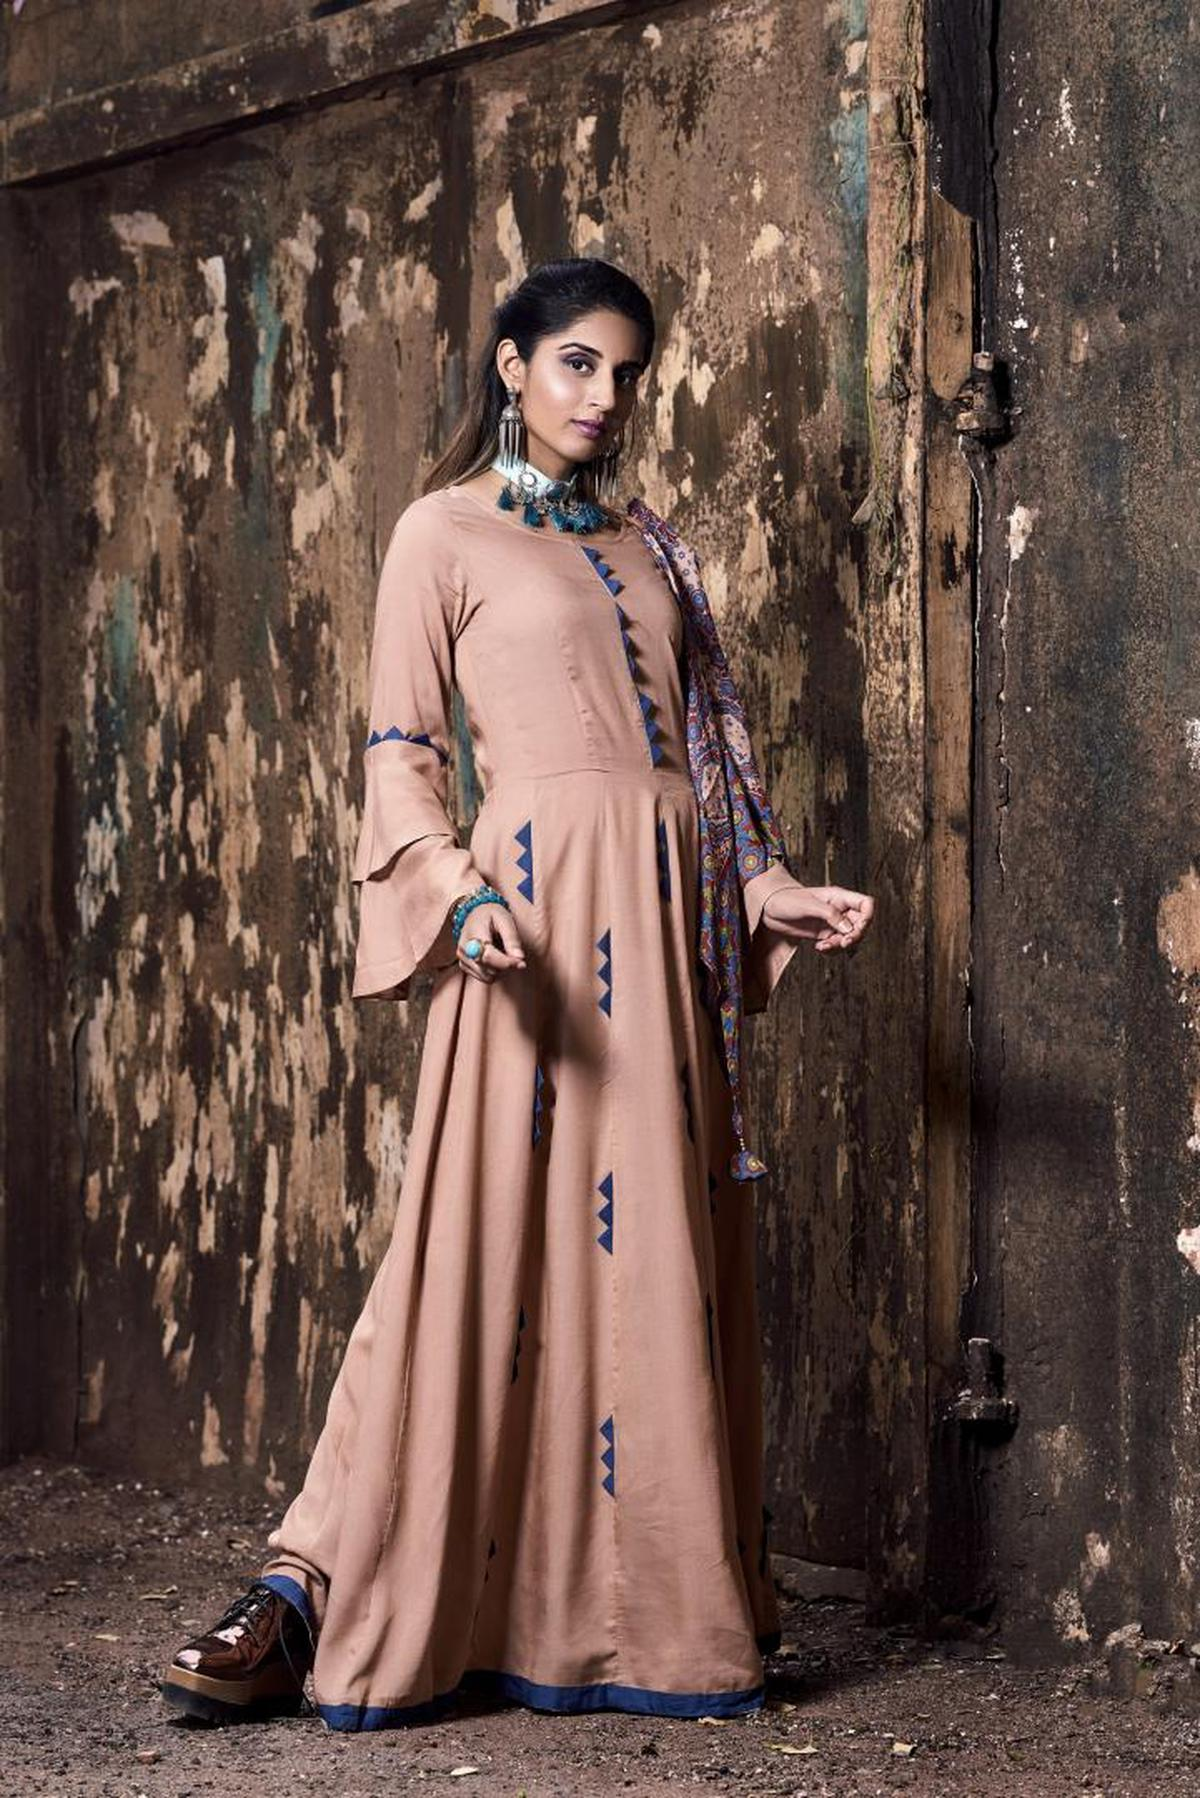 Image of Clothing, Formal wear, Lady, Fashion, Beauty, Brown etc.